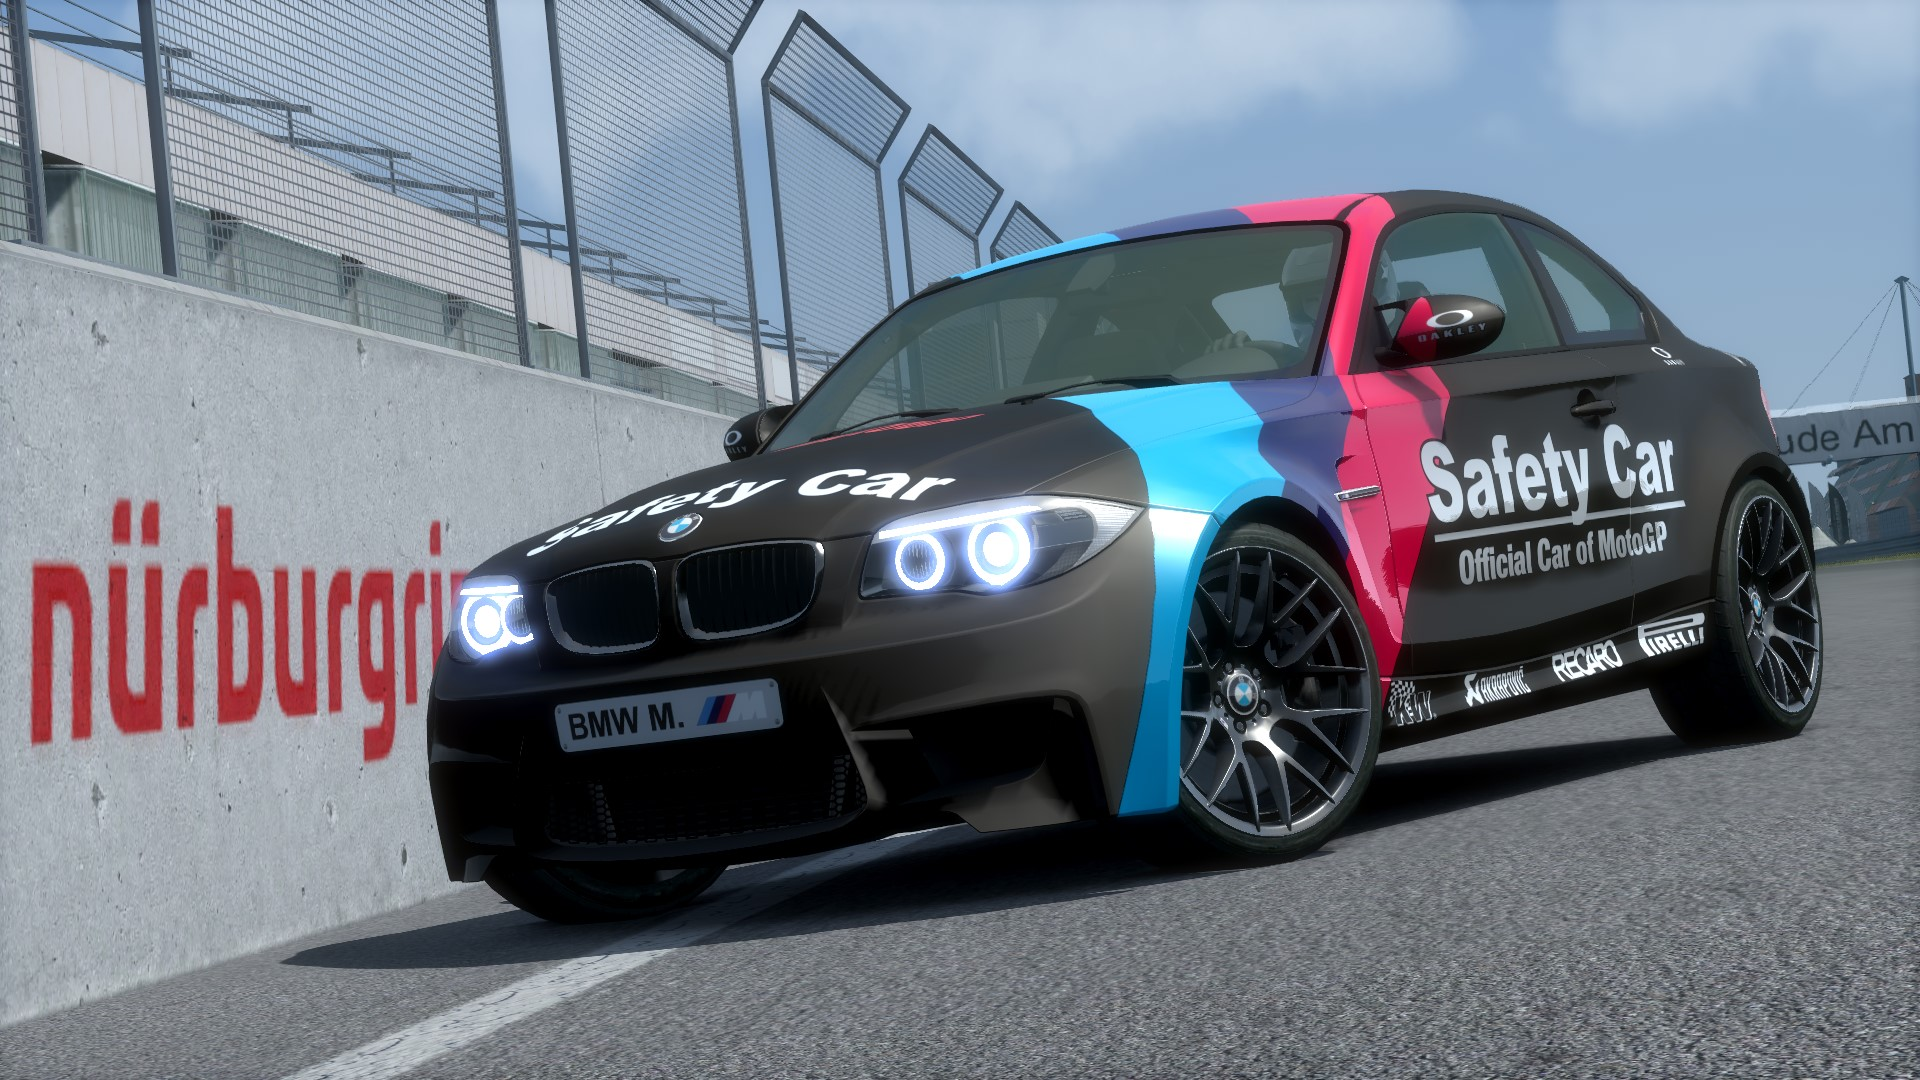 Screenshot_bmw_1m_nurburgring_6-3-2015-23-6-30.jpg